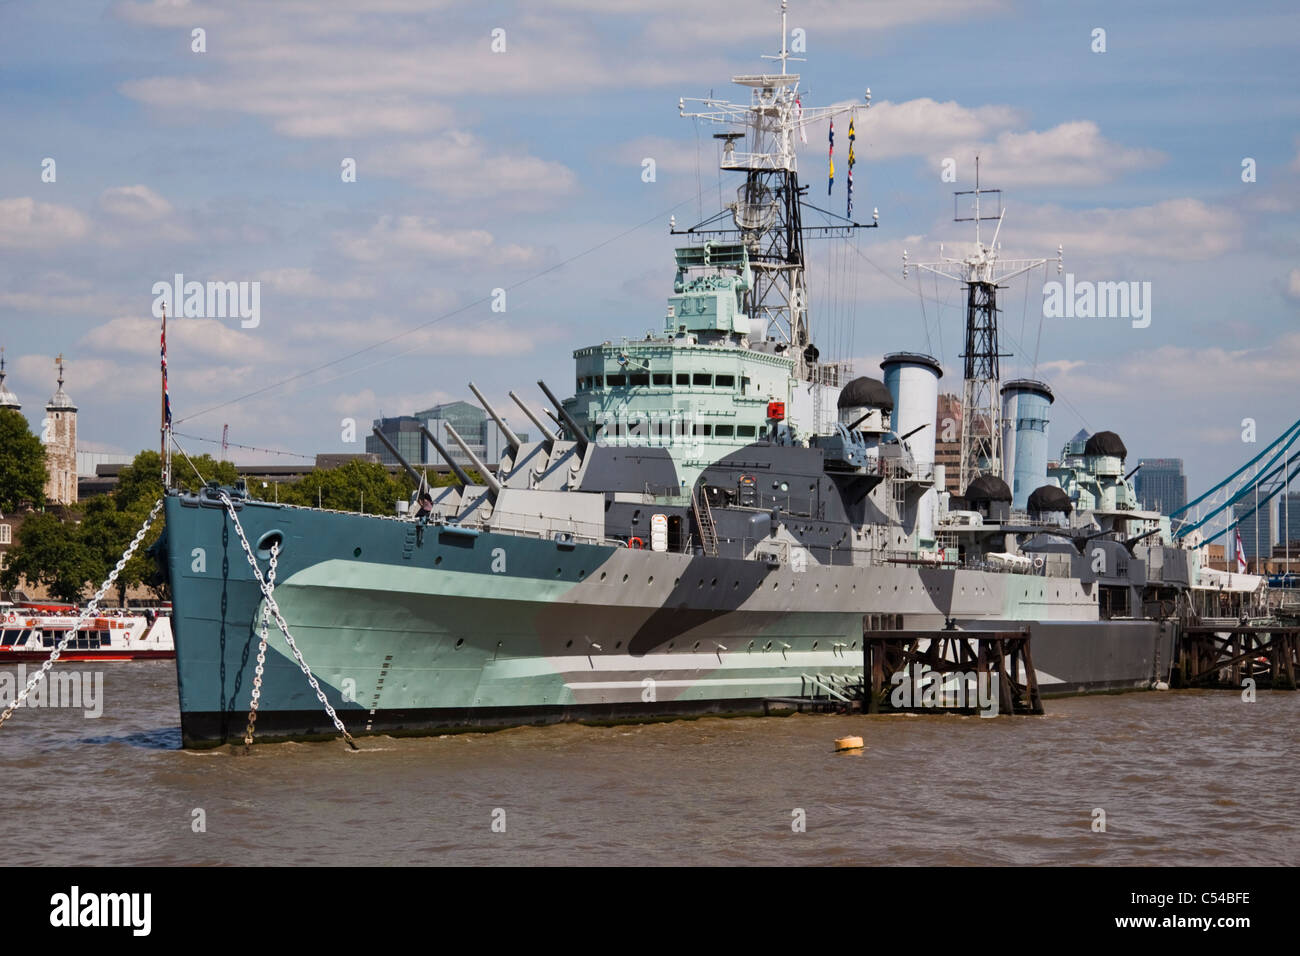 H.M.S.Belfast moored on the river Thames - Stock Image